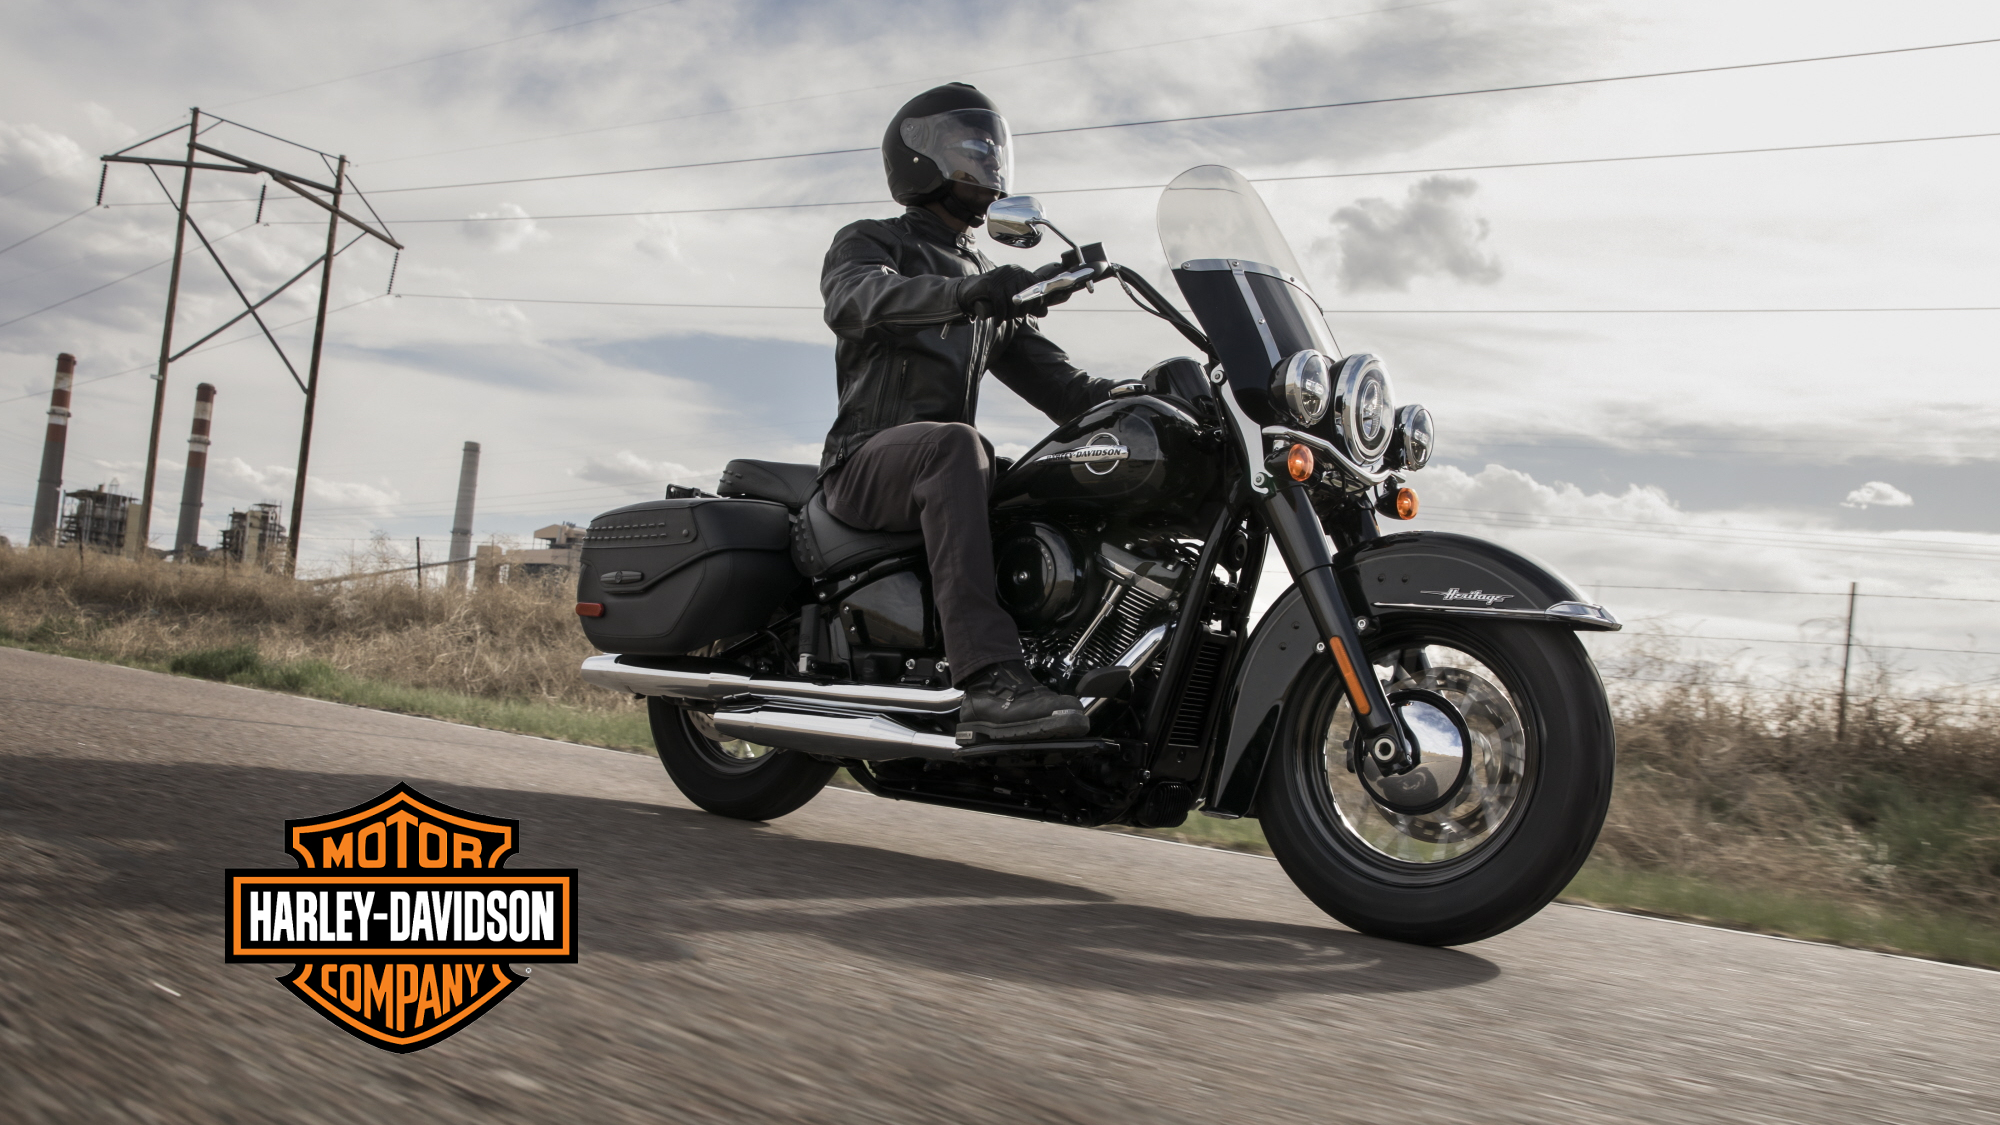 2018 - 2019 Harley-Davidson Heritage Classic | Top Speed